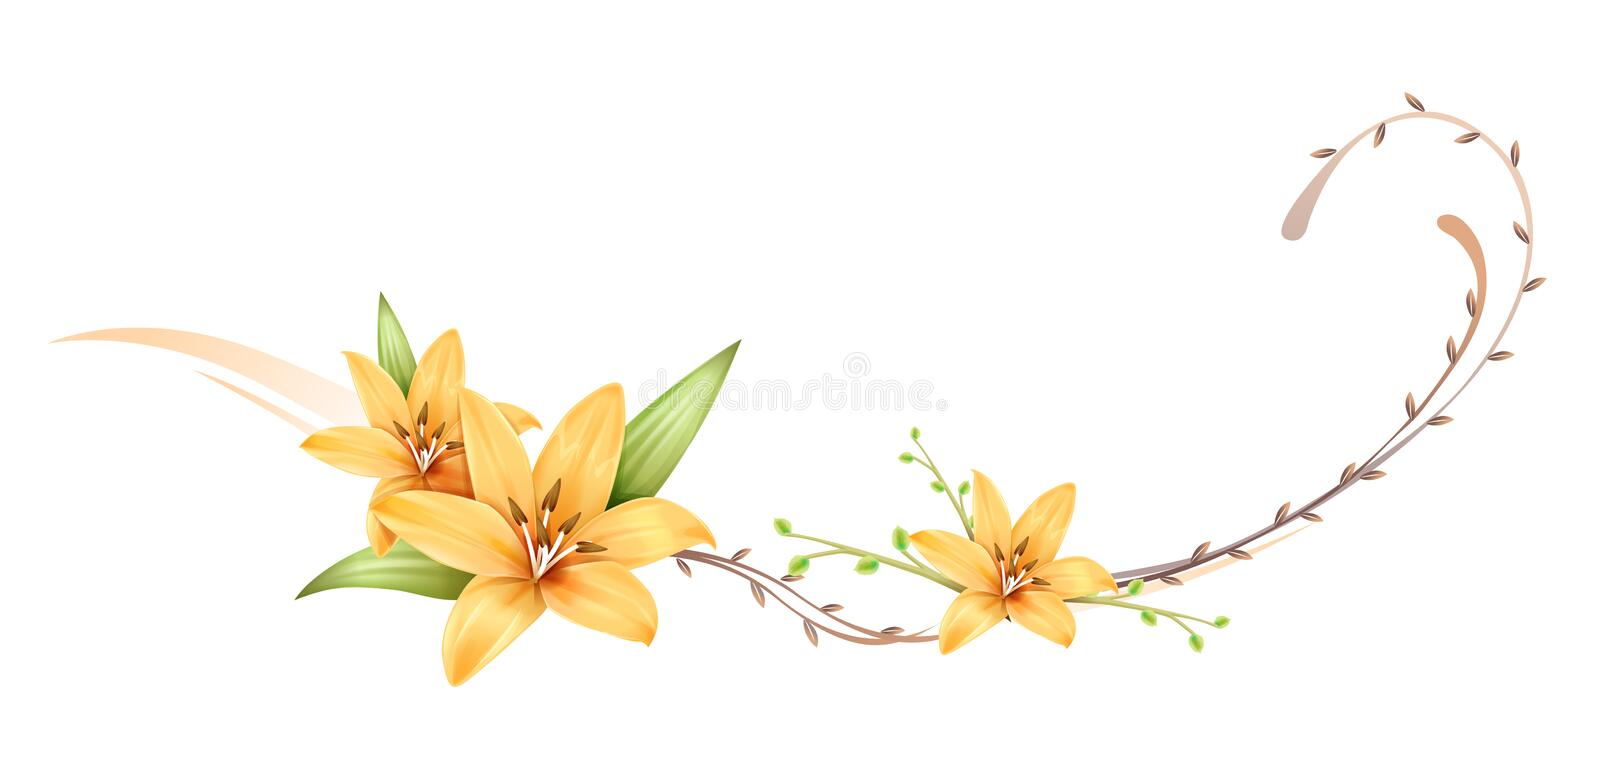 Flower. Illustration drawing of a group of orchids royalty free illustration